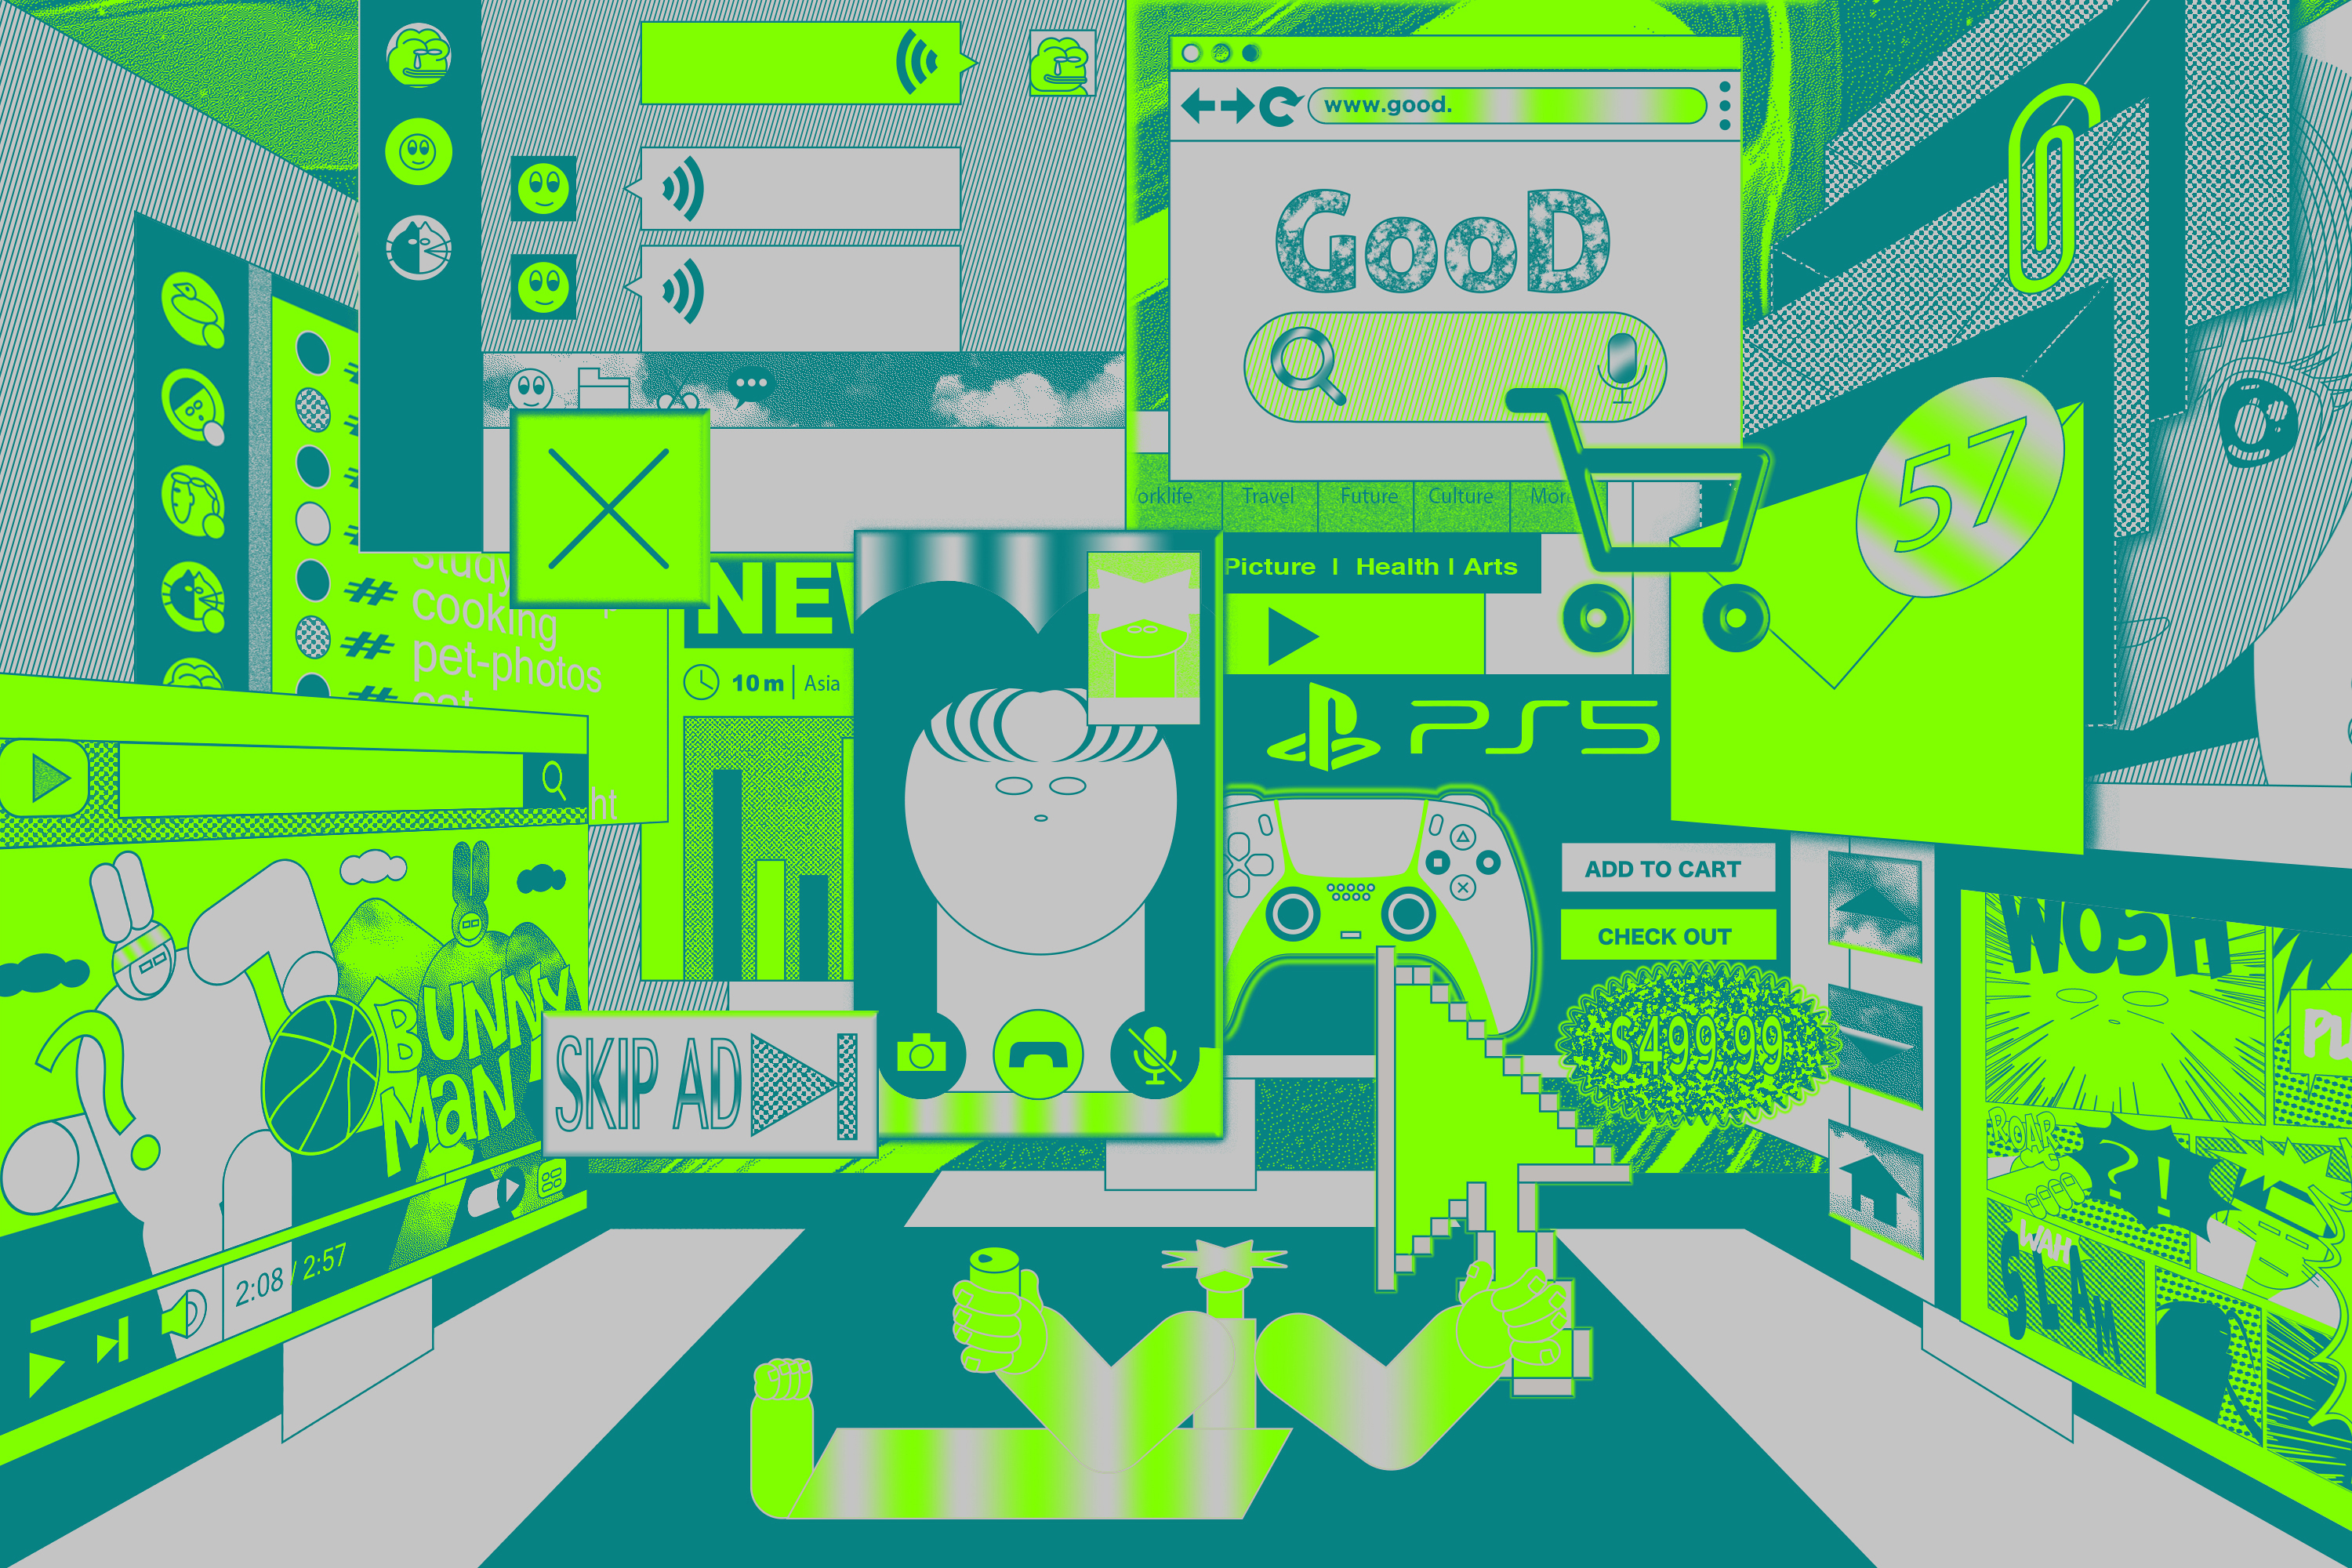 Abstract illustration inspired by digital screens in lime green, sage and grey colors